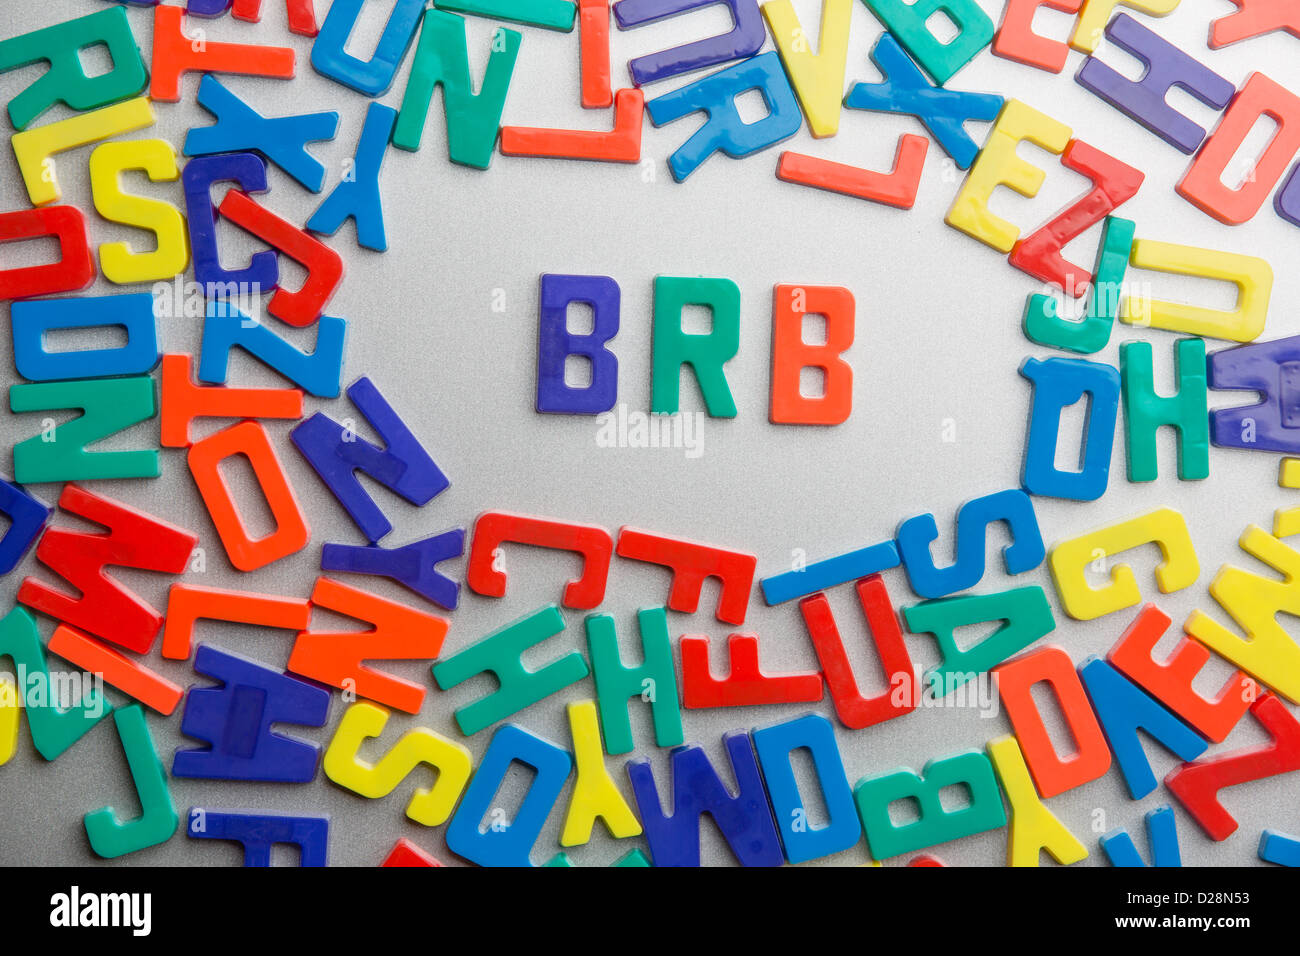 'BRB' -  be right back - Refrigerator magnets spell a message out of a jumble of letters - Stock Image